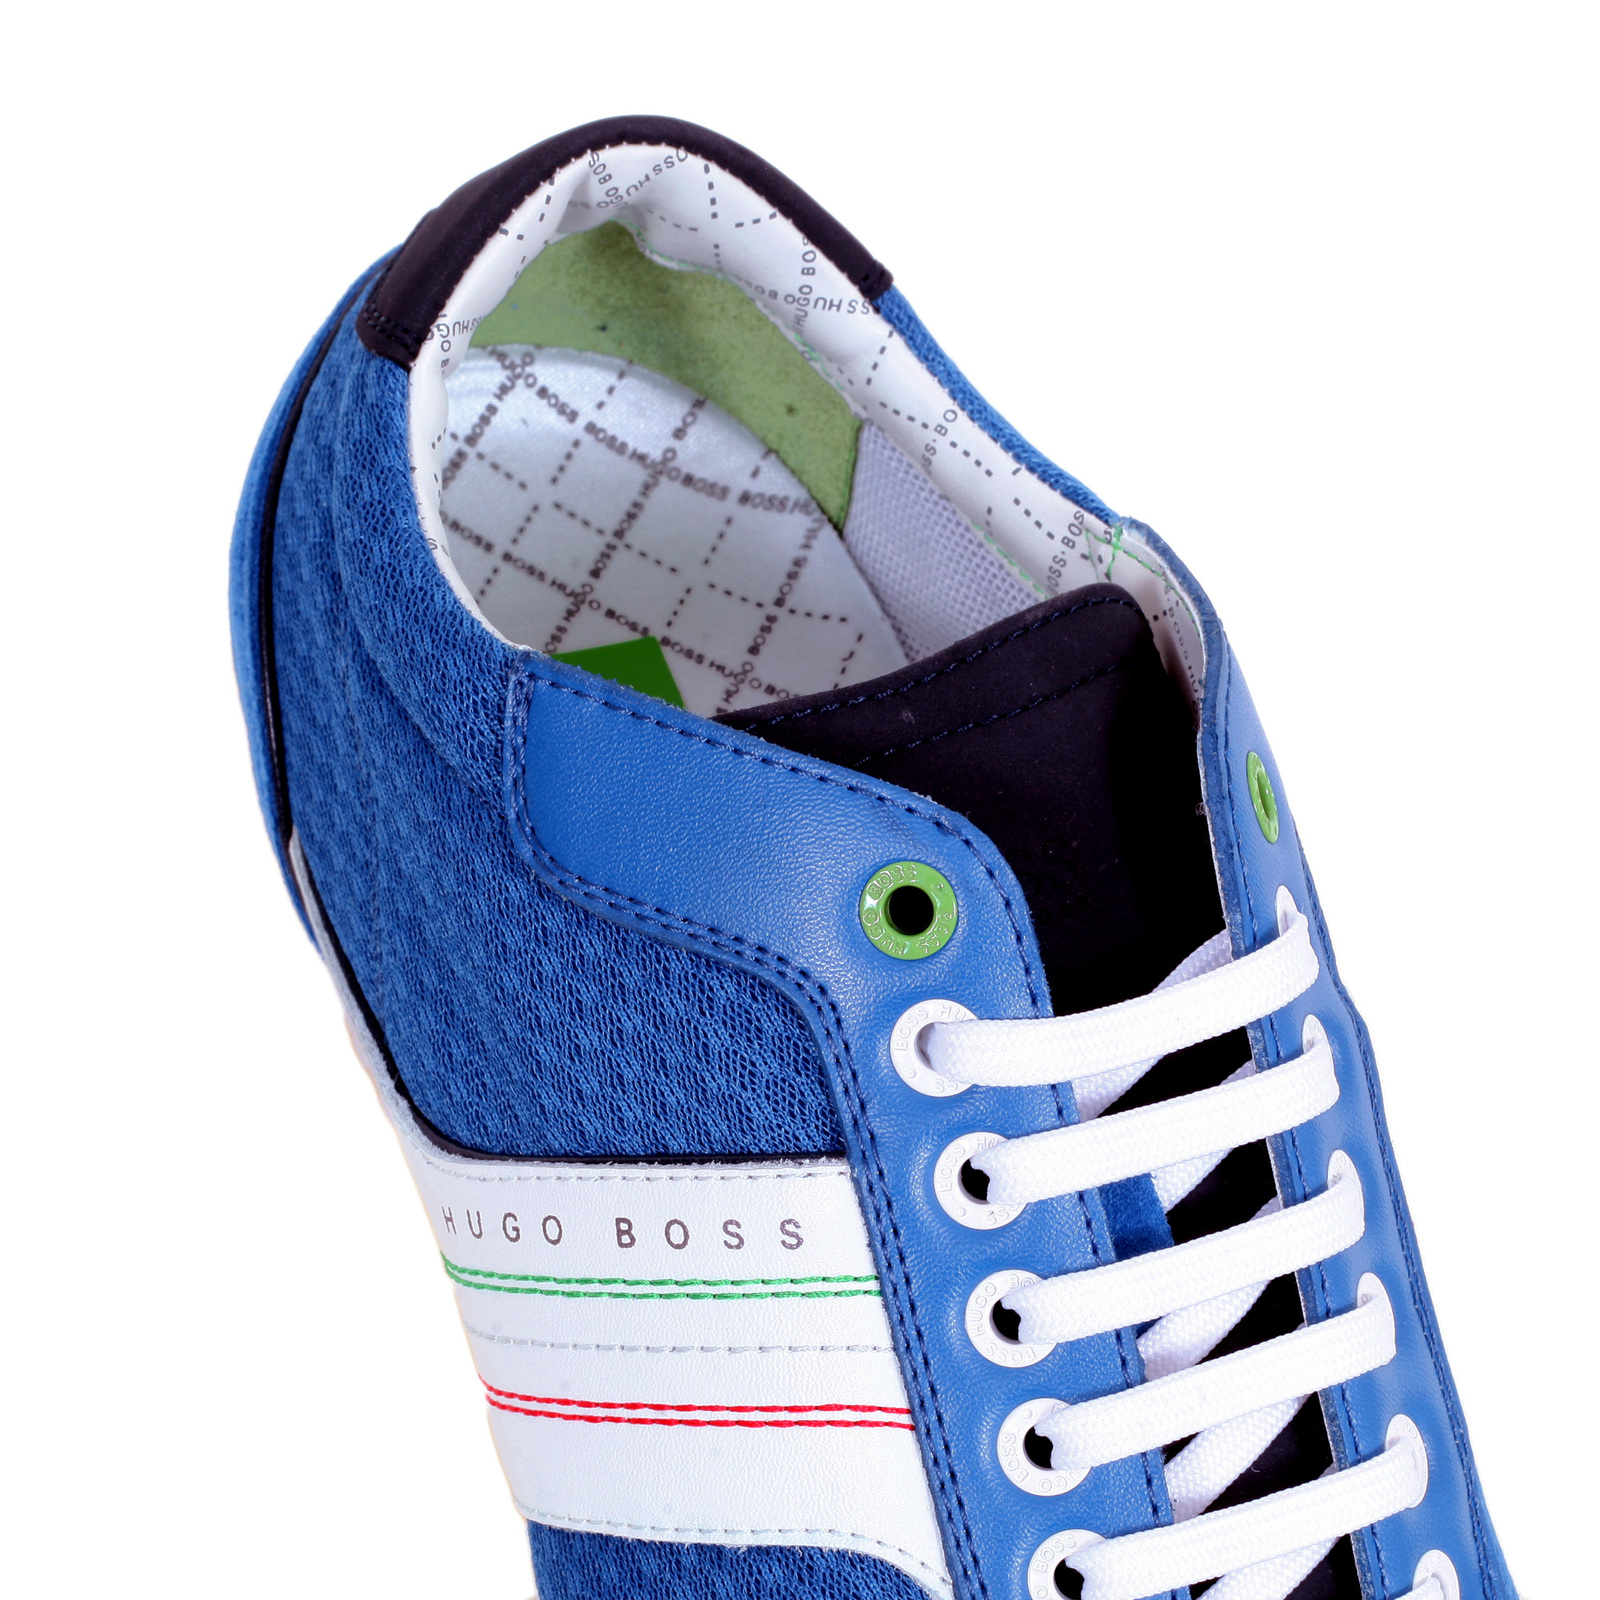 c913a5d630 Low Top Victov Hugo Boss Green Trainers in Medium Blue with Round Toe  BOSS5877